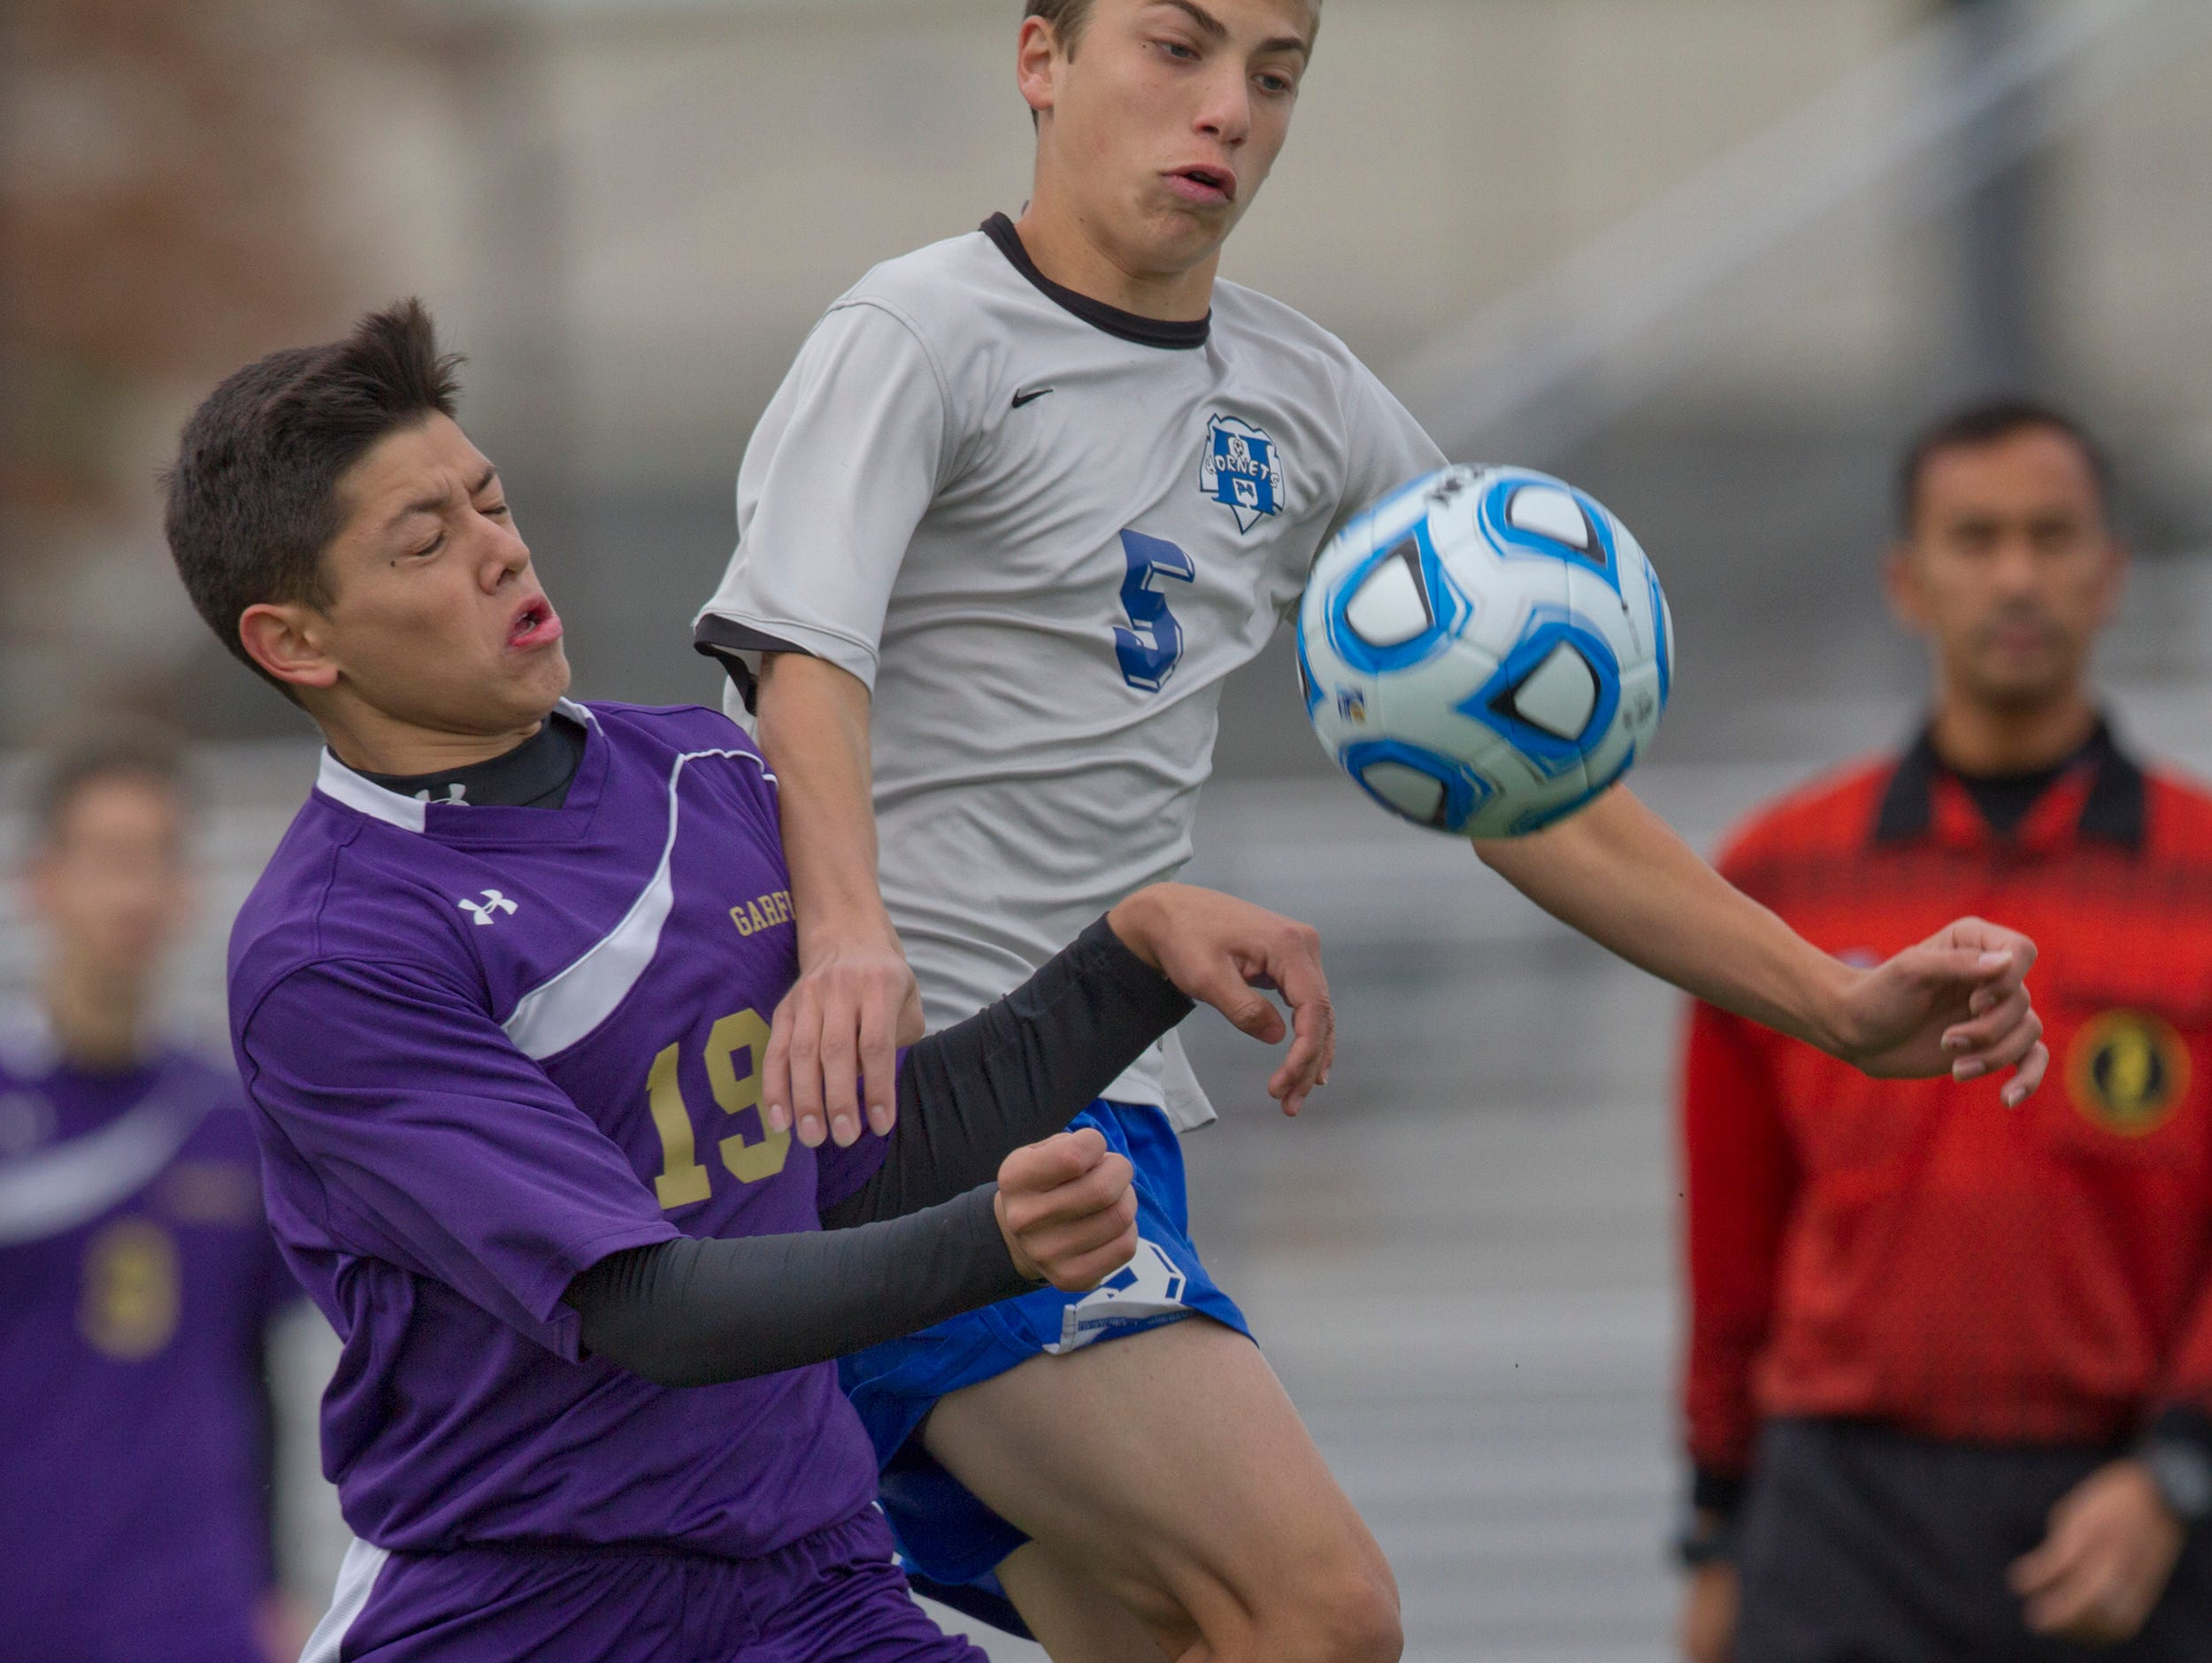 Garfield's Enrique Nunez and Holmdel's Joe Arena battle for ball during first half action. Holmdel Boys Soccer vs Garfield in NJSIAA State Group II Championship at Kean University on November 22, 2015 in Union, NJ.